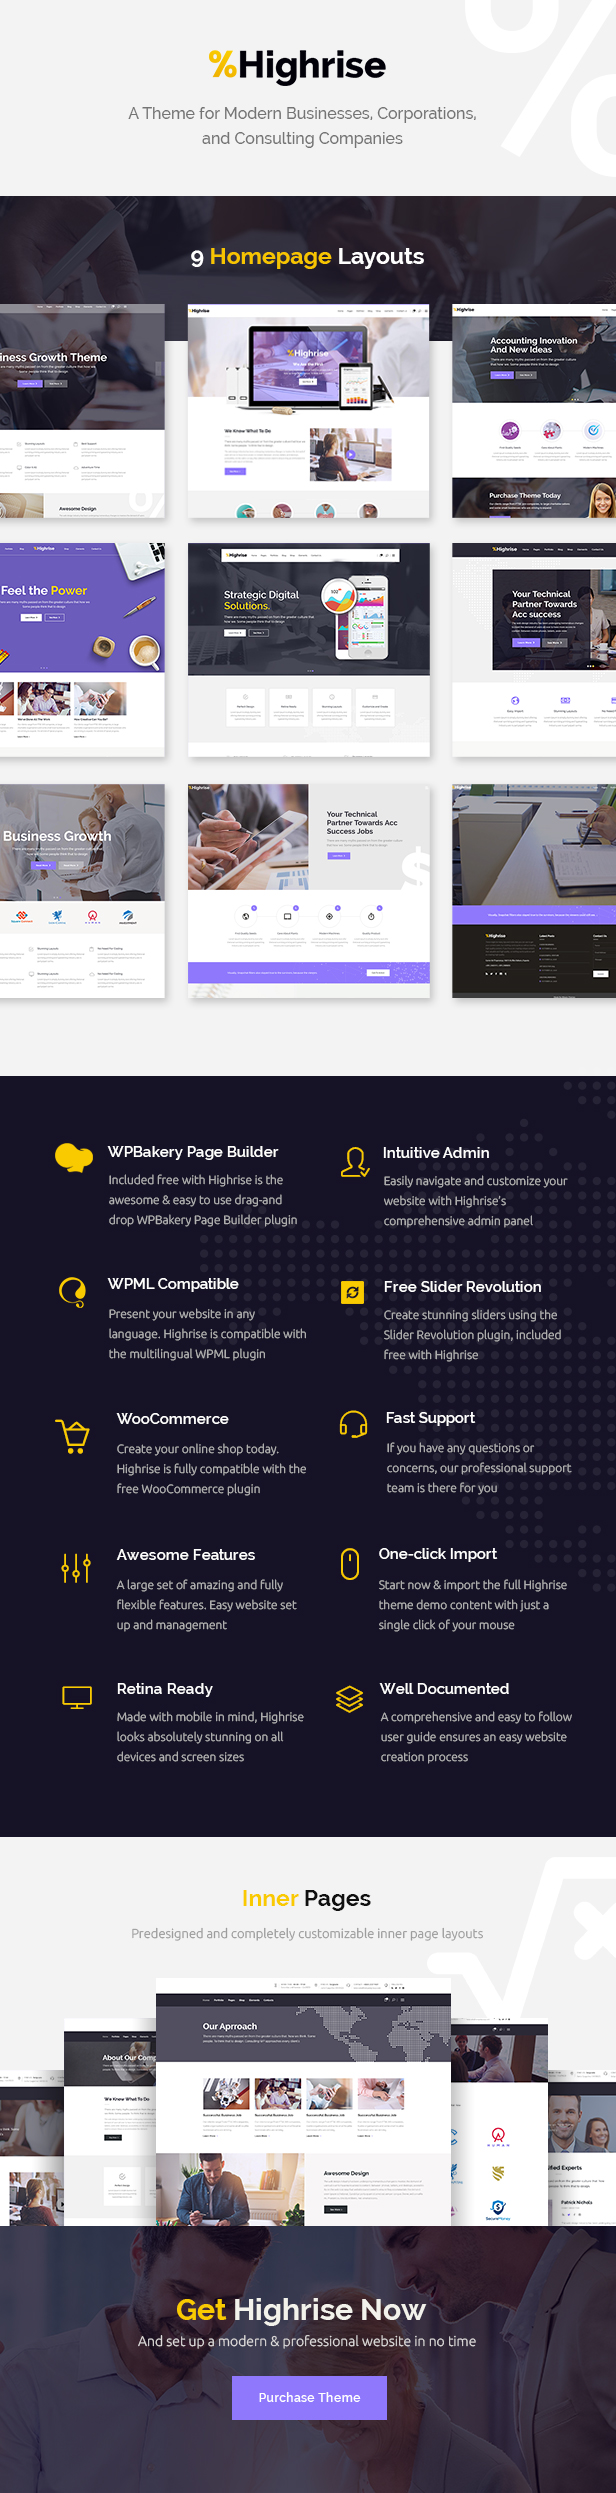 Highrise - Business, Corporation and Consulting Company Theme - 1